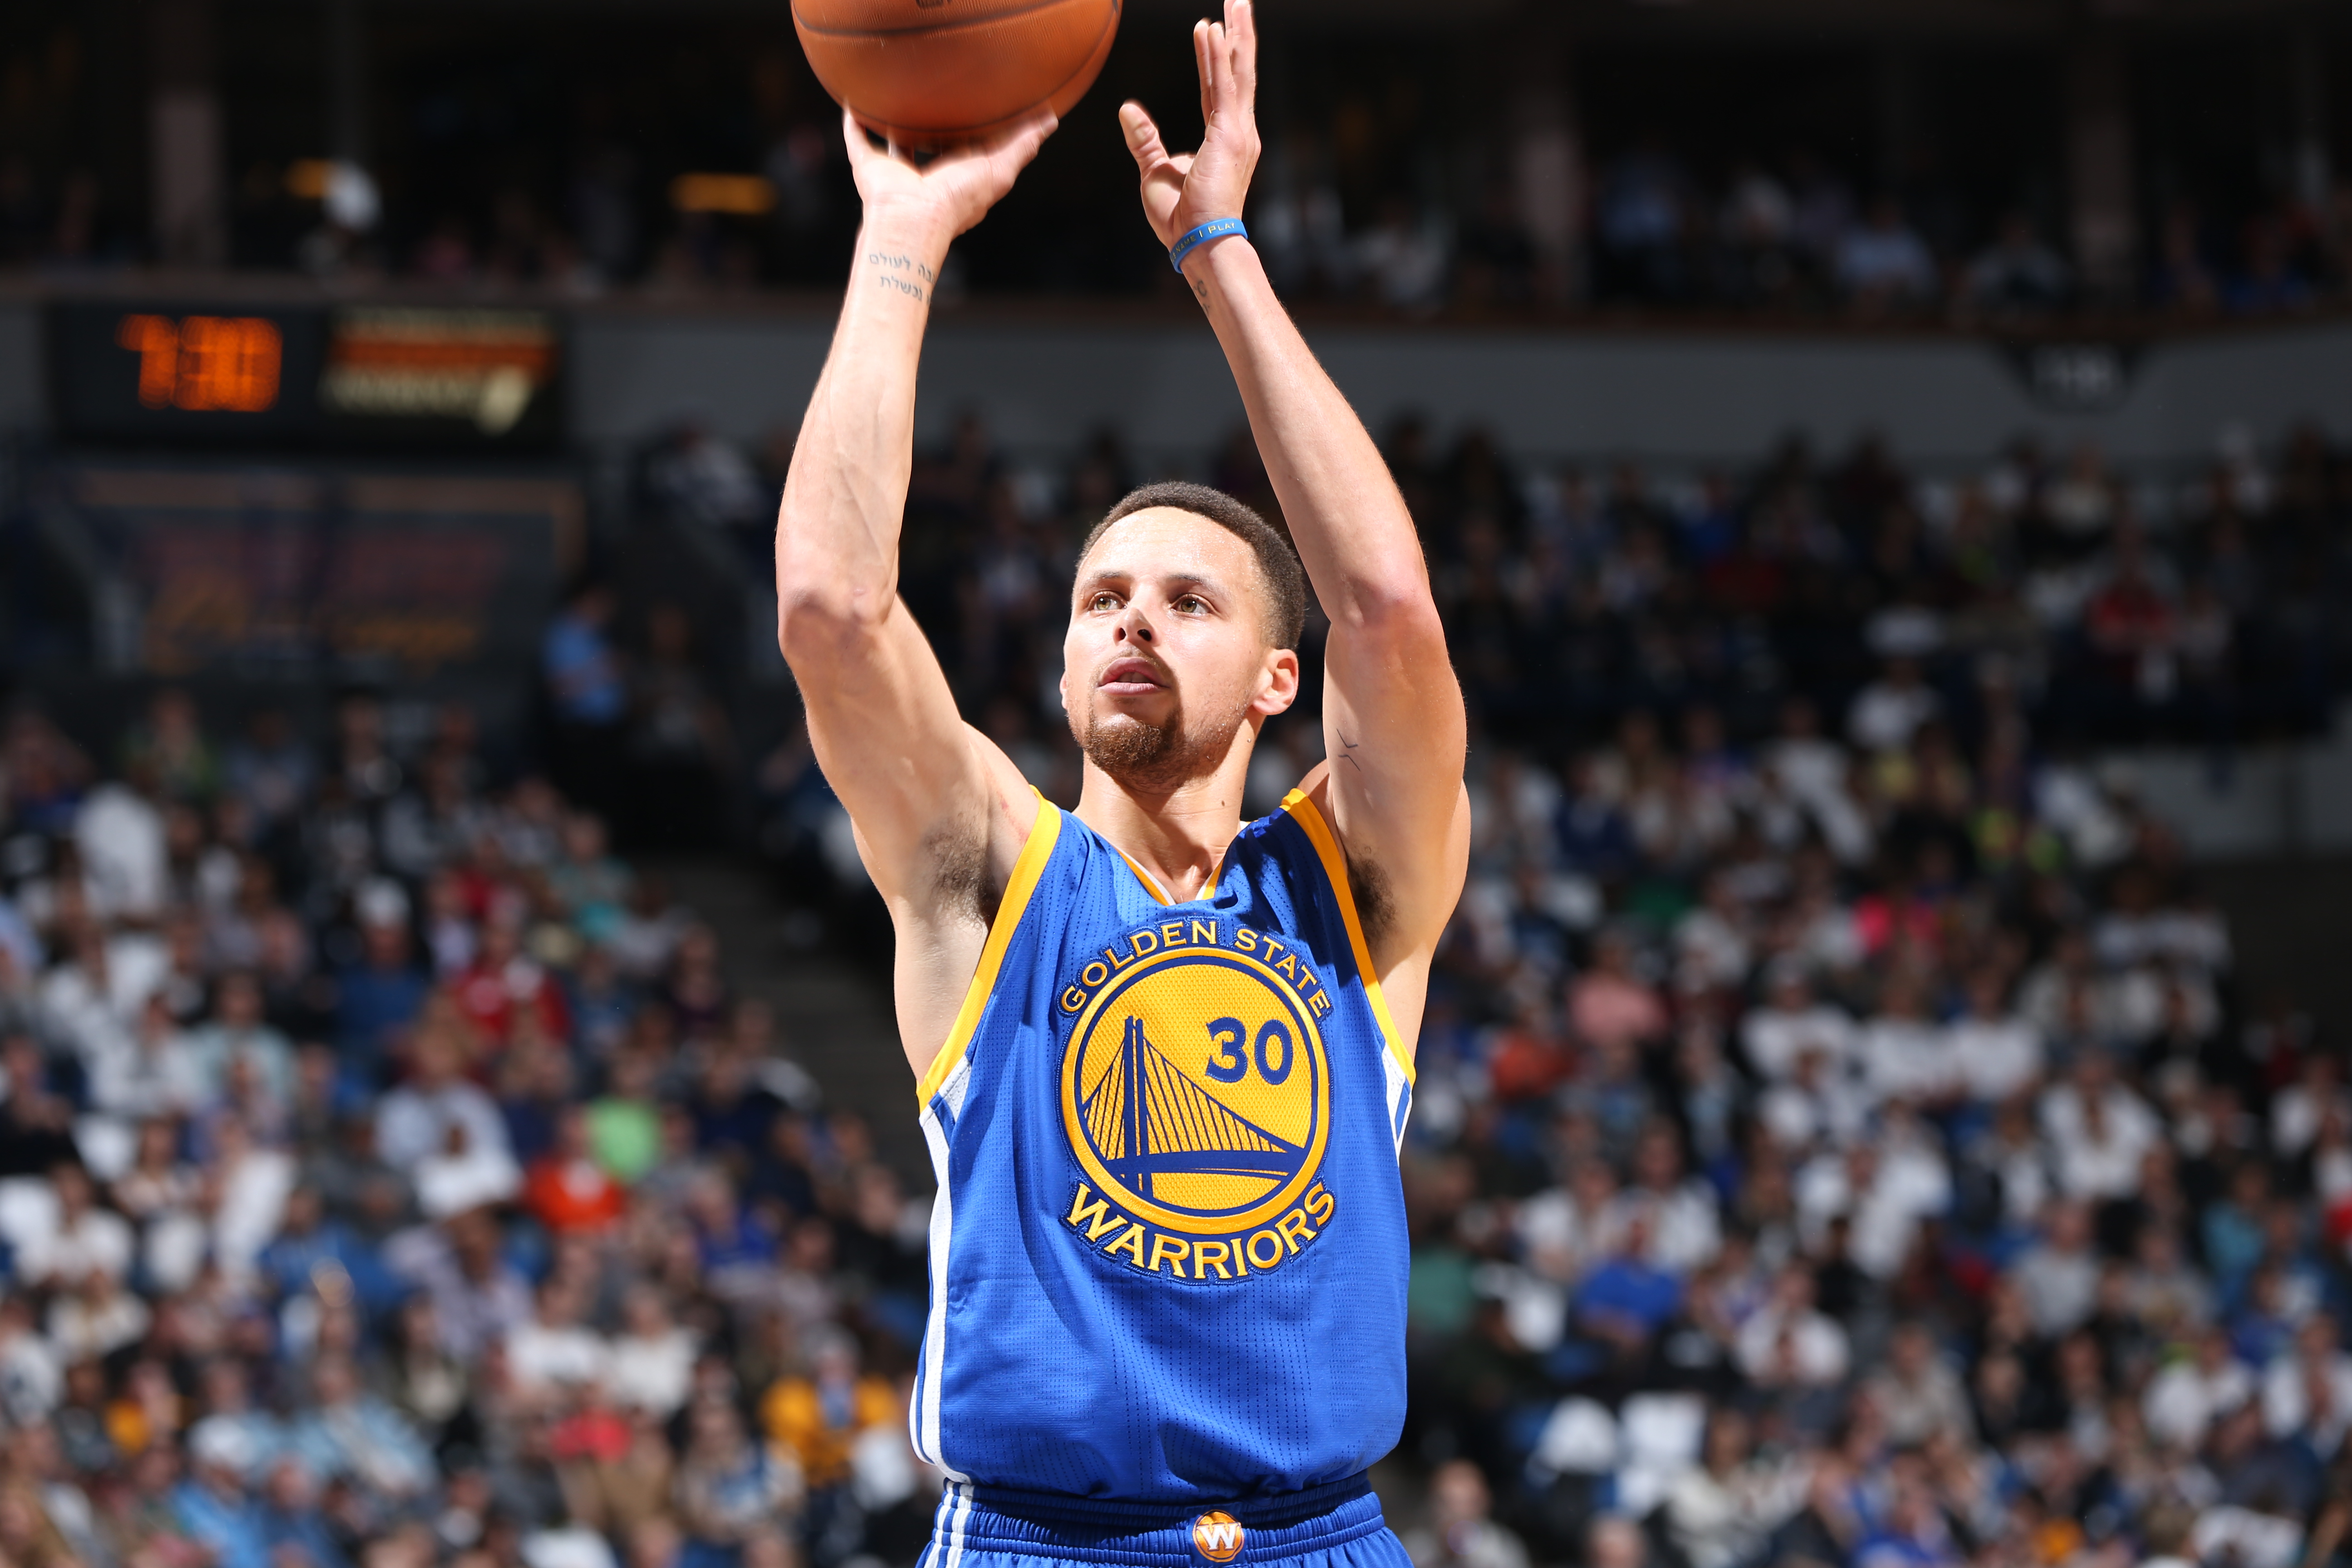 Stephen Curry #30 of the Golden State Warriorss shoots the ball against the Minnesota Timberwolves  on March 21, 2016 at Target Center in Minneapolis, Minnesota.